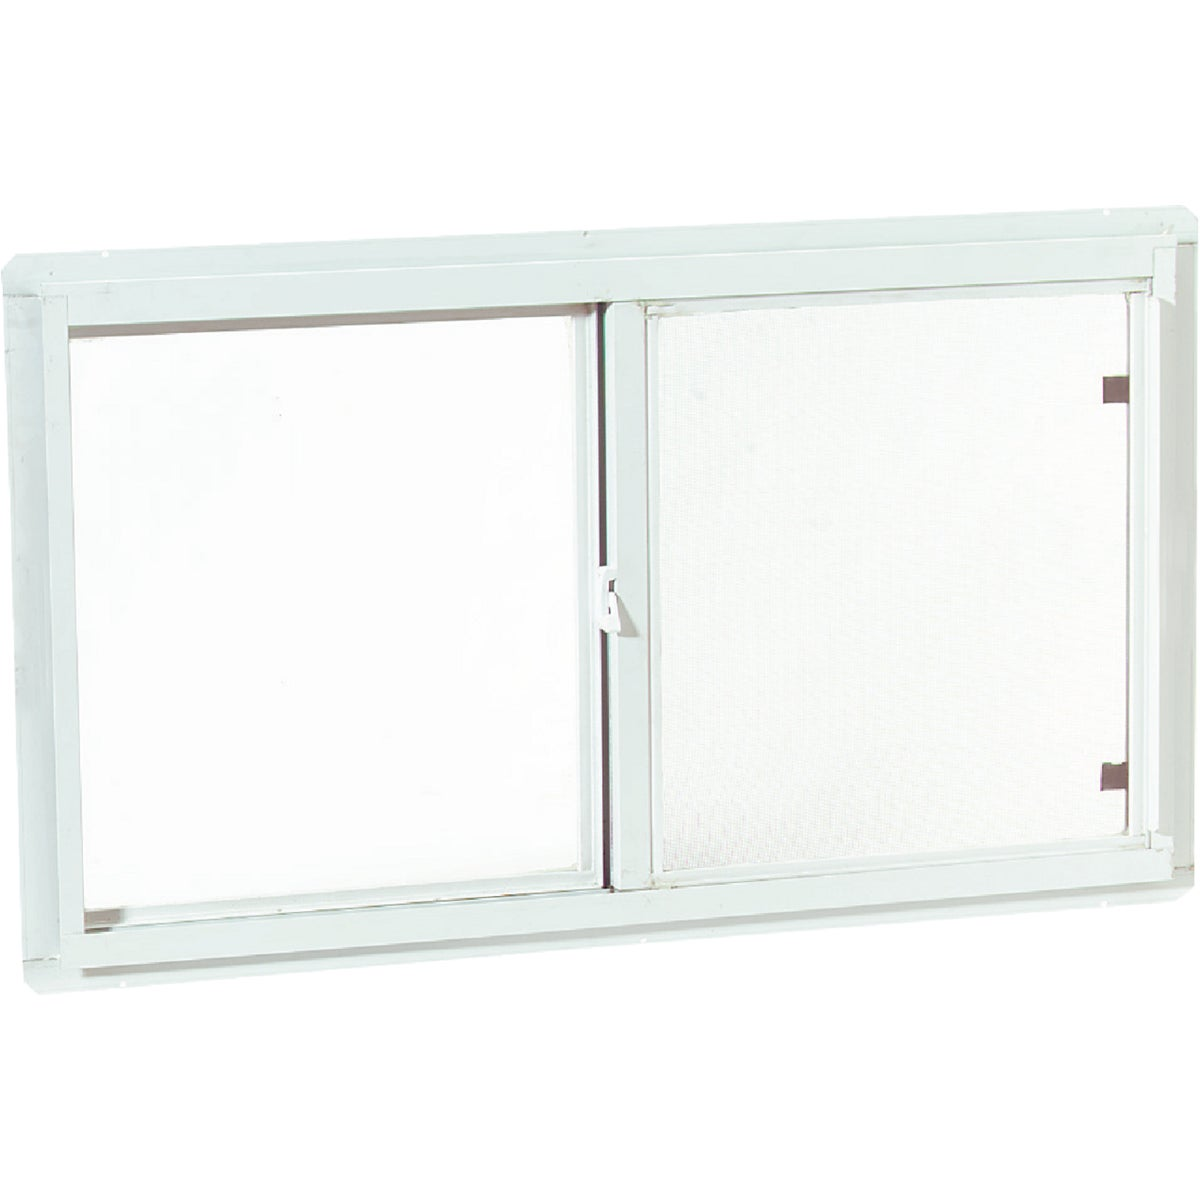 51W 46X22 SLIDING WINDOW